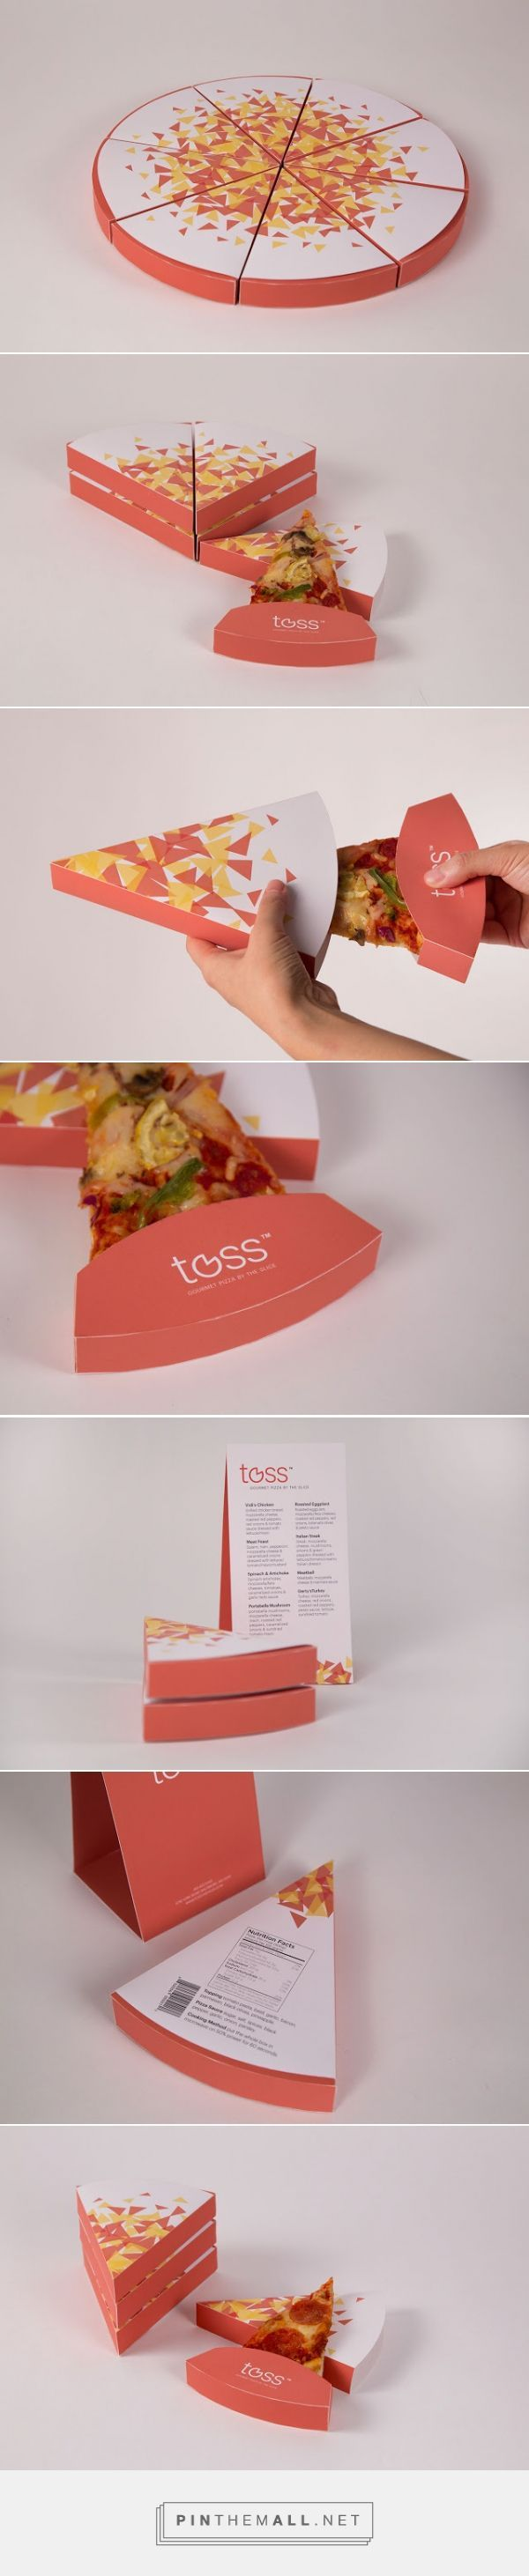 Toss - Gourmet #Pizza #packaging By The Slice designed by Yinan Wang - http://www.packagingoftheworld.com/2015/03/toss-gourmet-pizza-by-slice-student.html